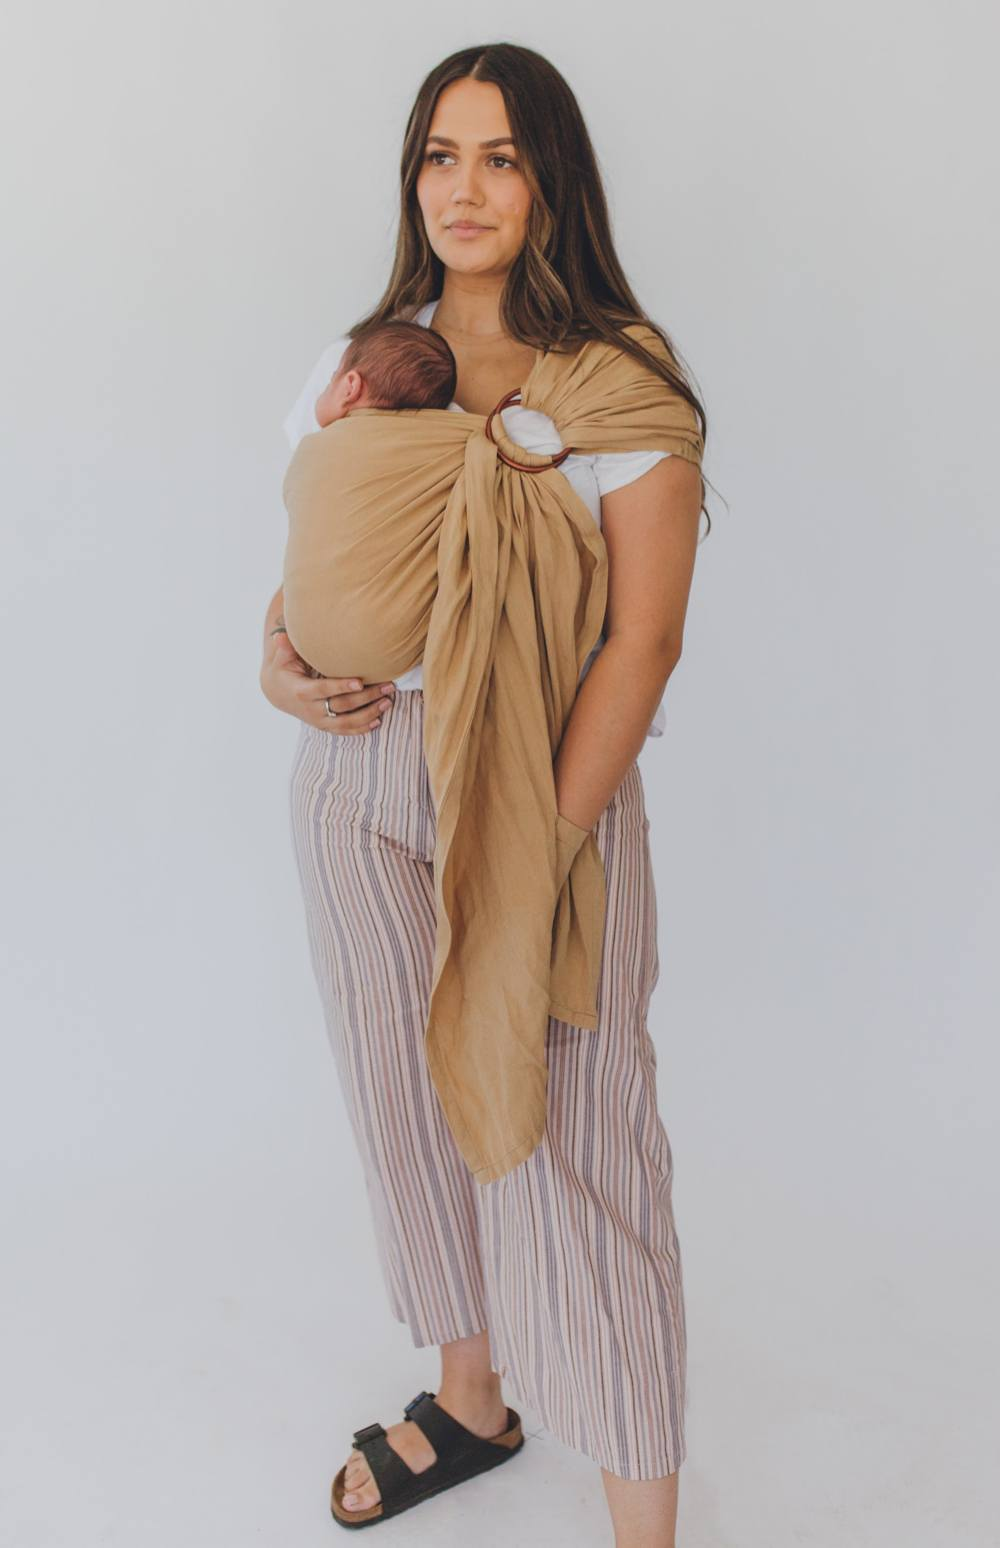 Camel chekoh sling baby carrier bamboo and linen blend for newborn, infants and toddlers